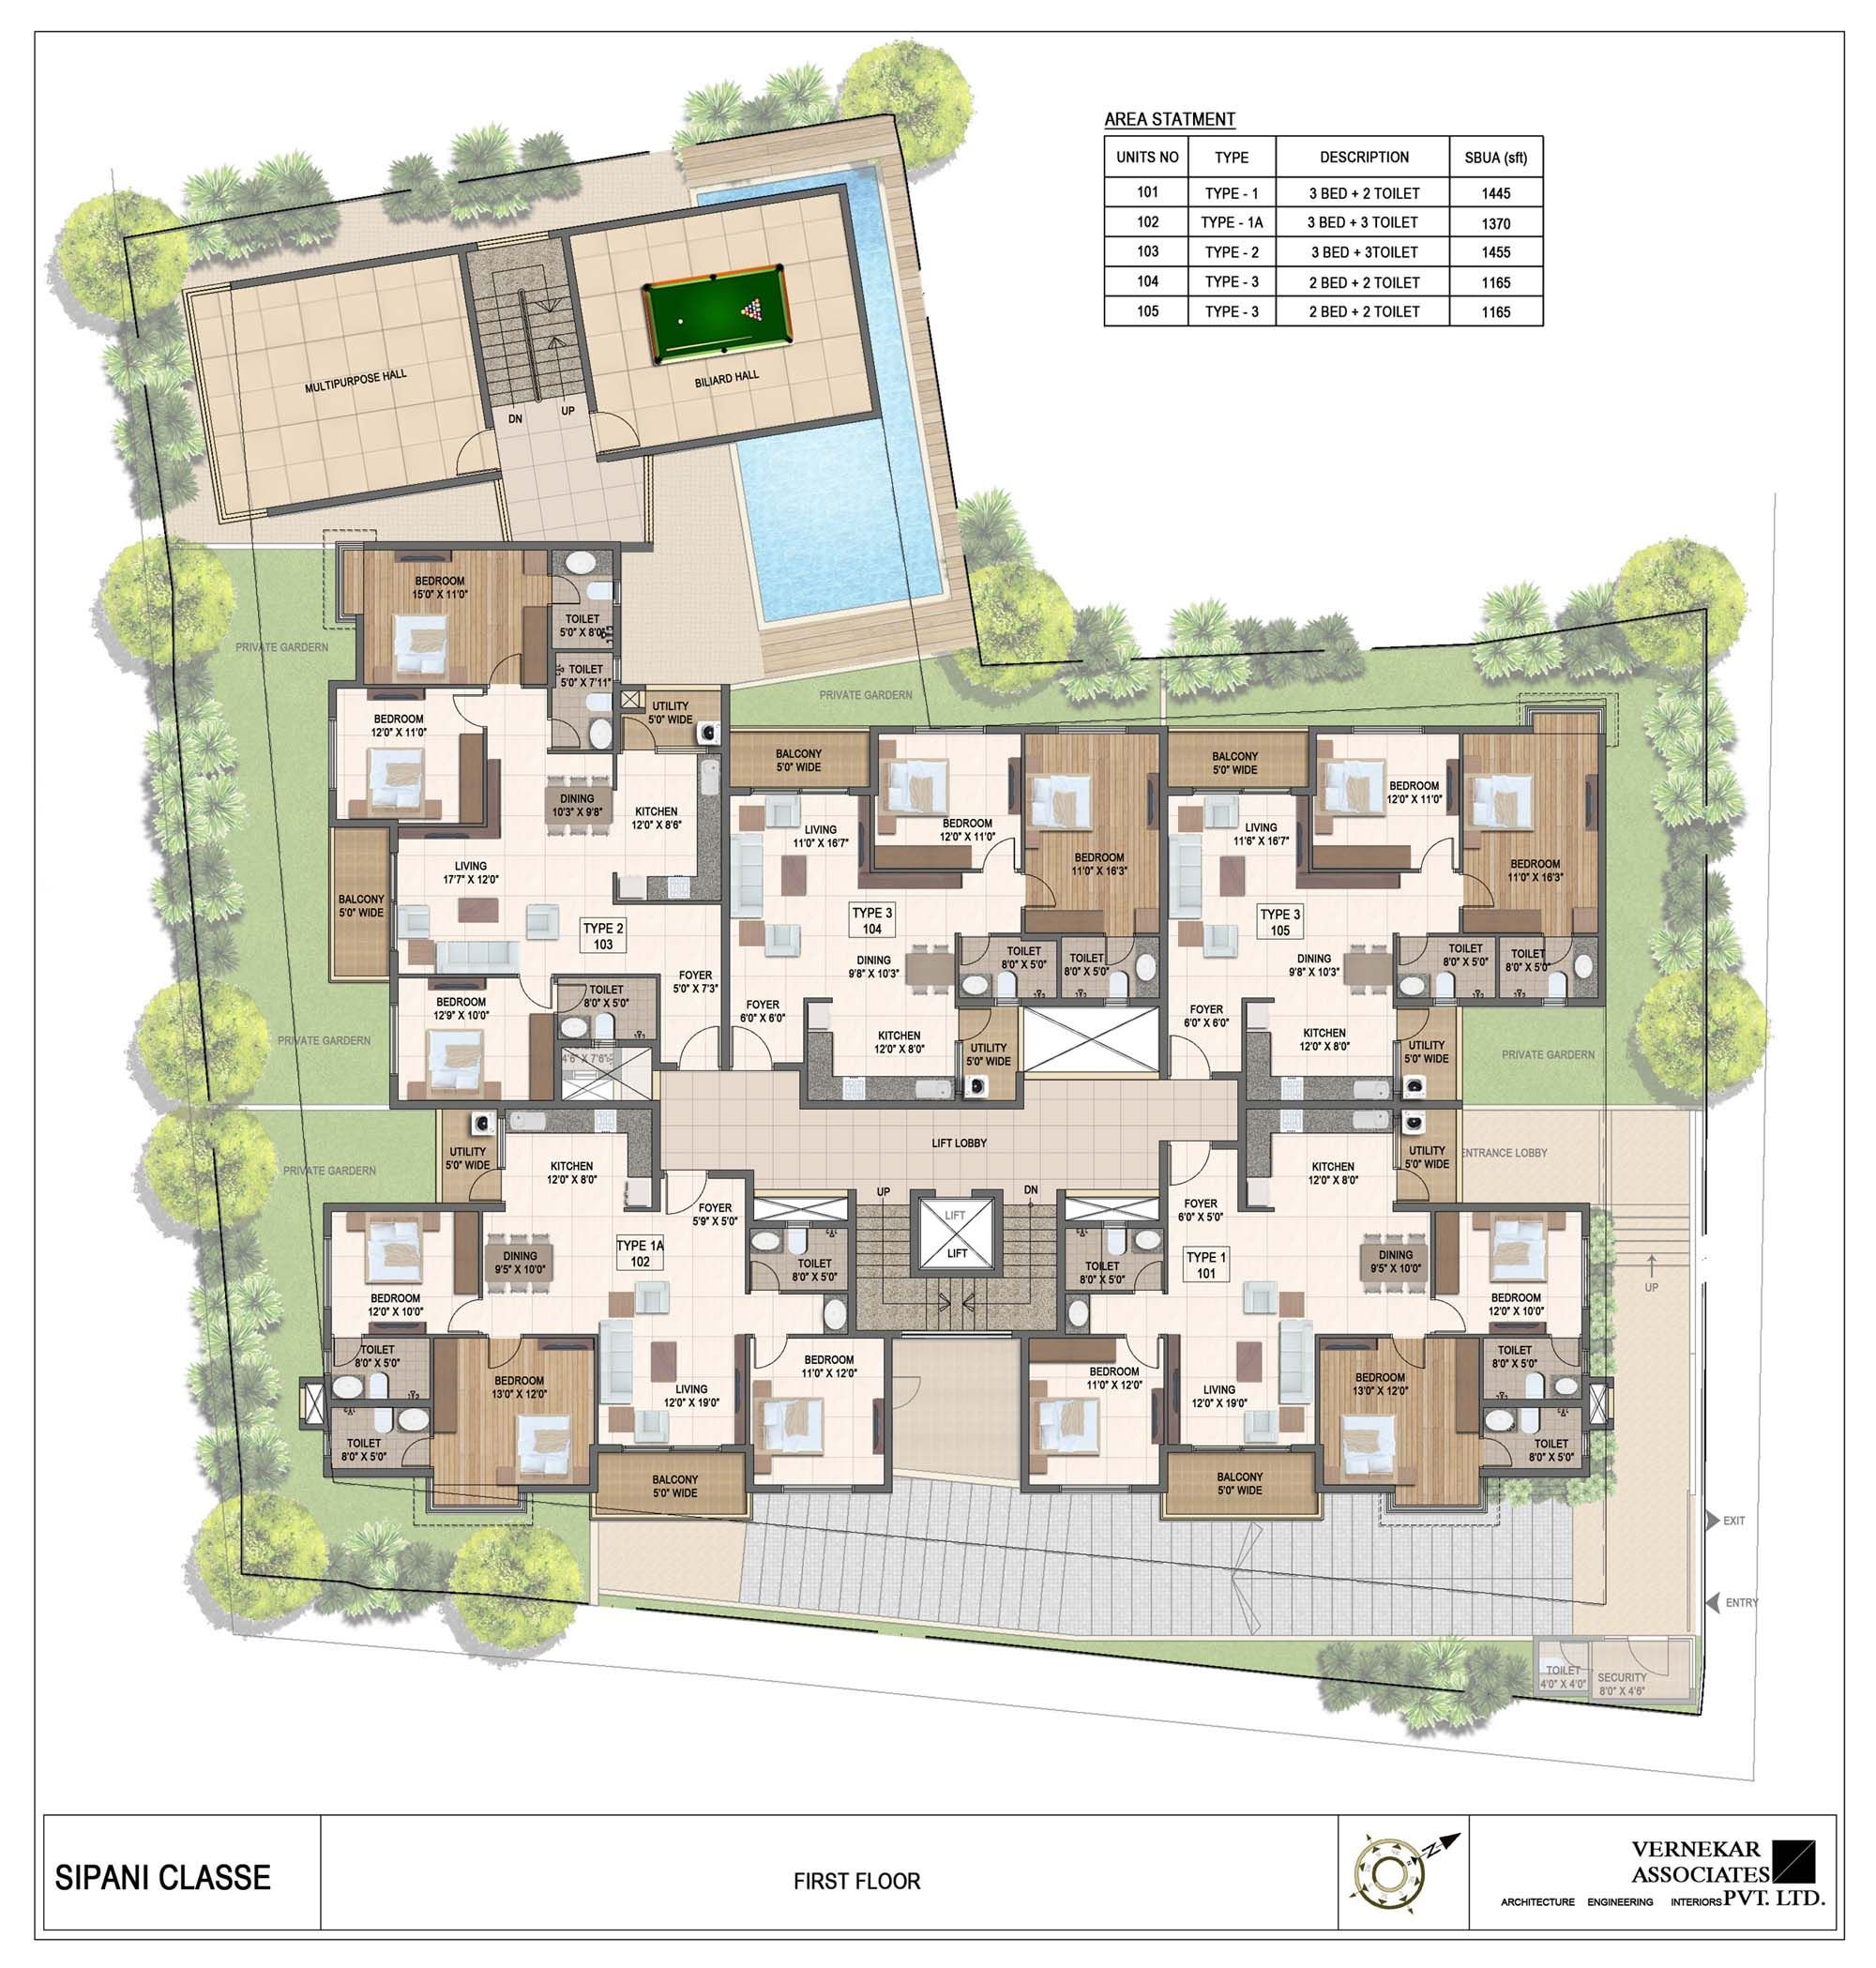 Sipani Classe Layout Architectural floor plans